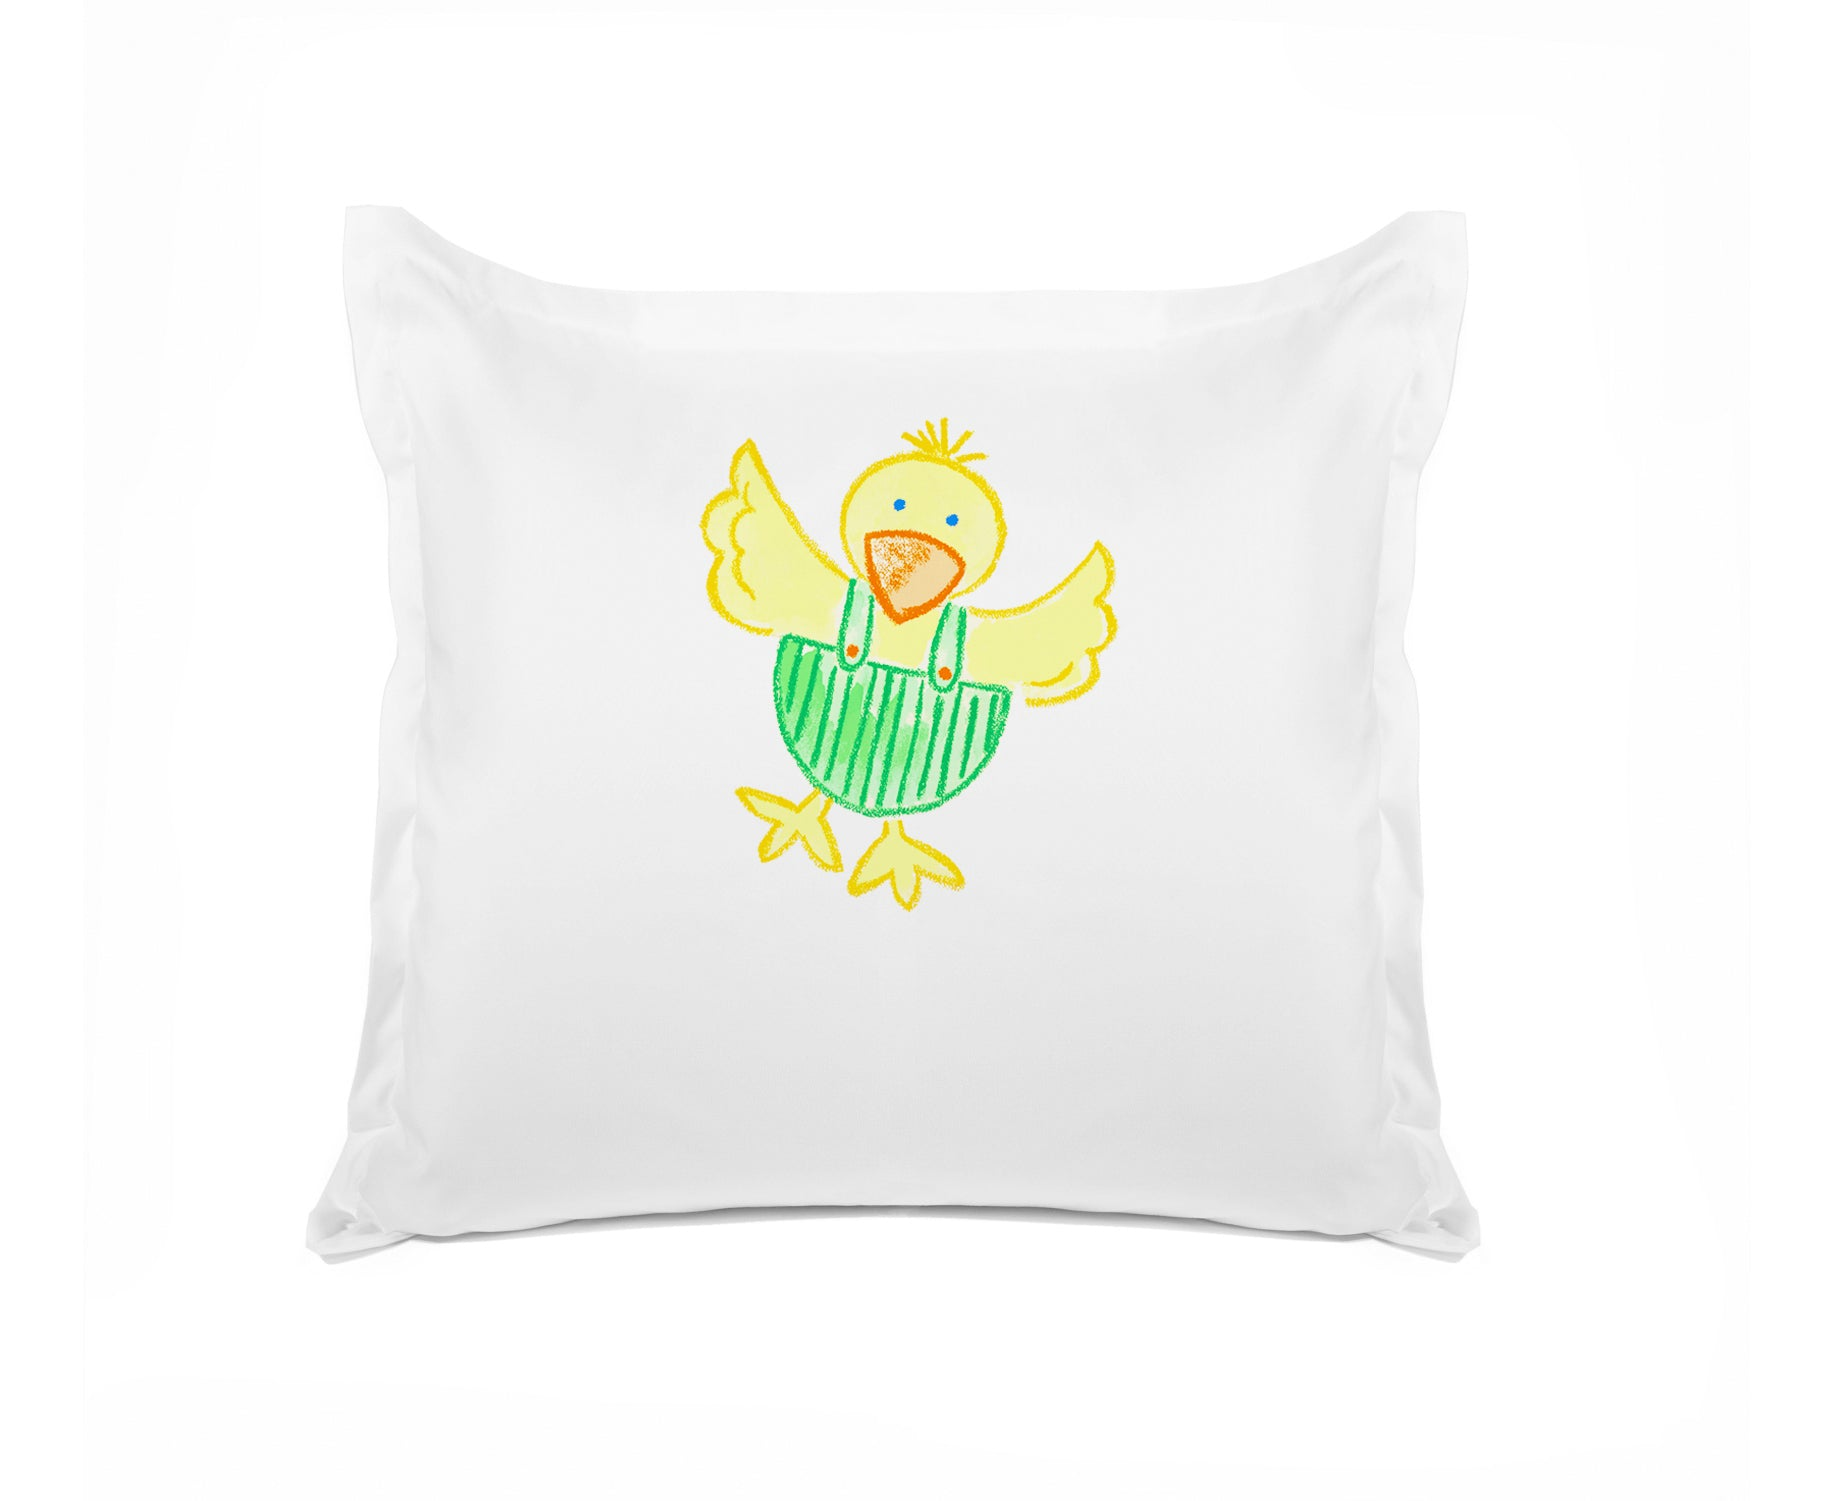 Duck - Personalized Kids Pillowcase Collection